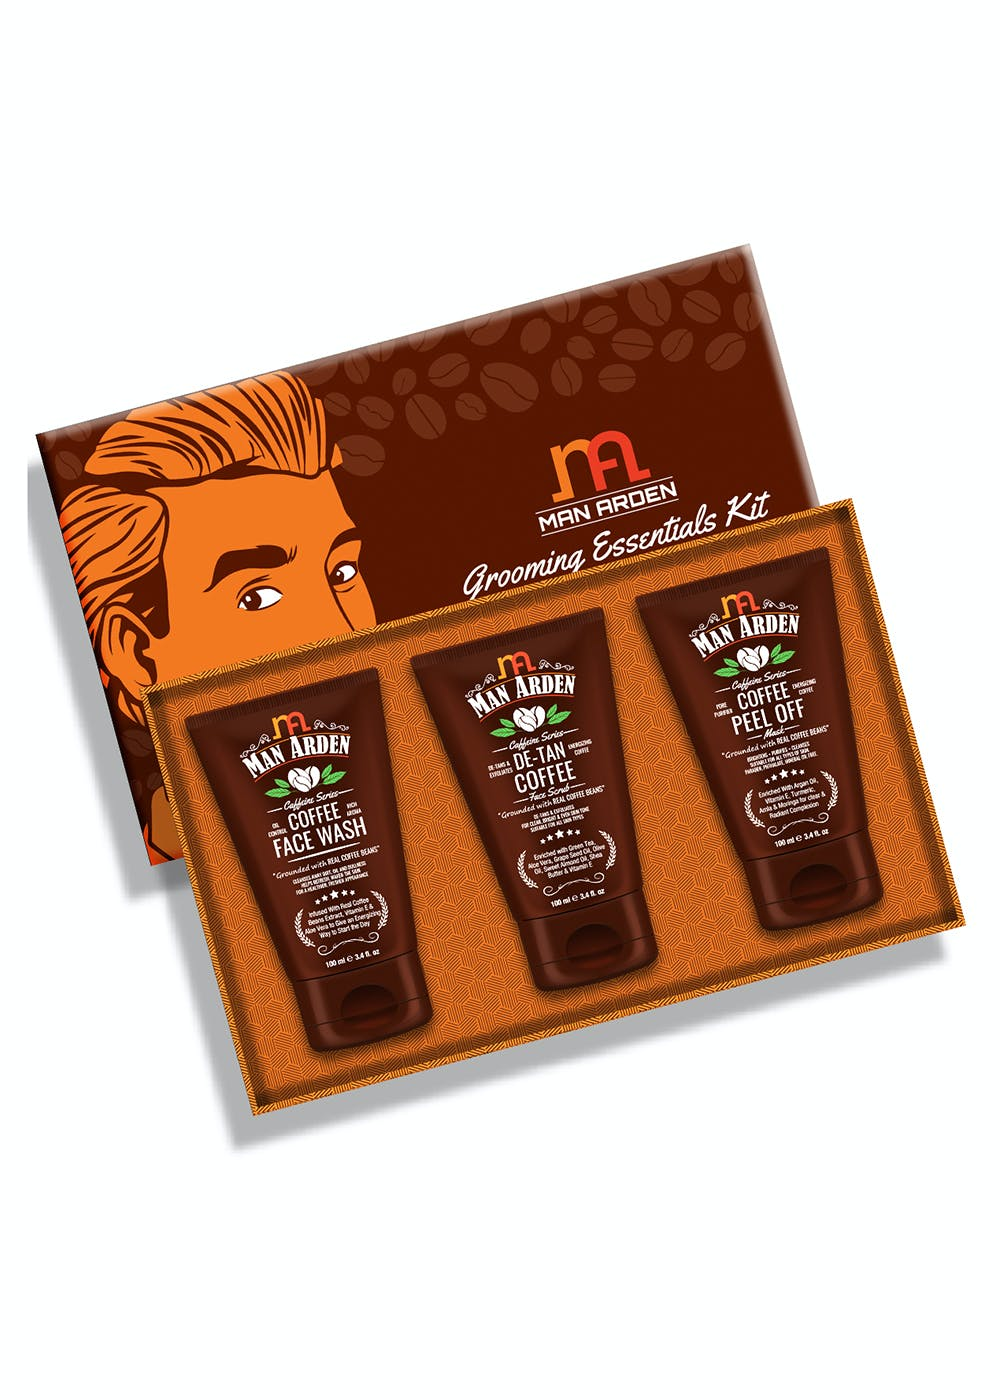 Coffee Skin Care Kit (Face Wash, Face Scrub, Peel Off Mask) - 100ml Each